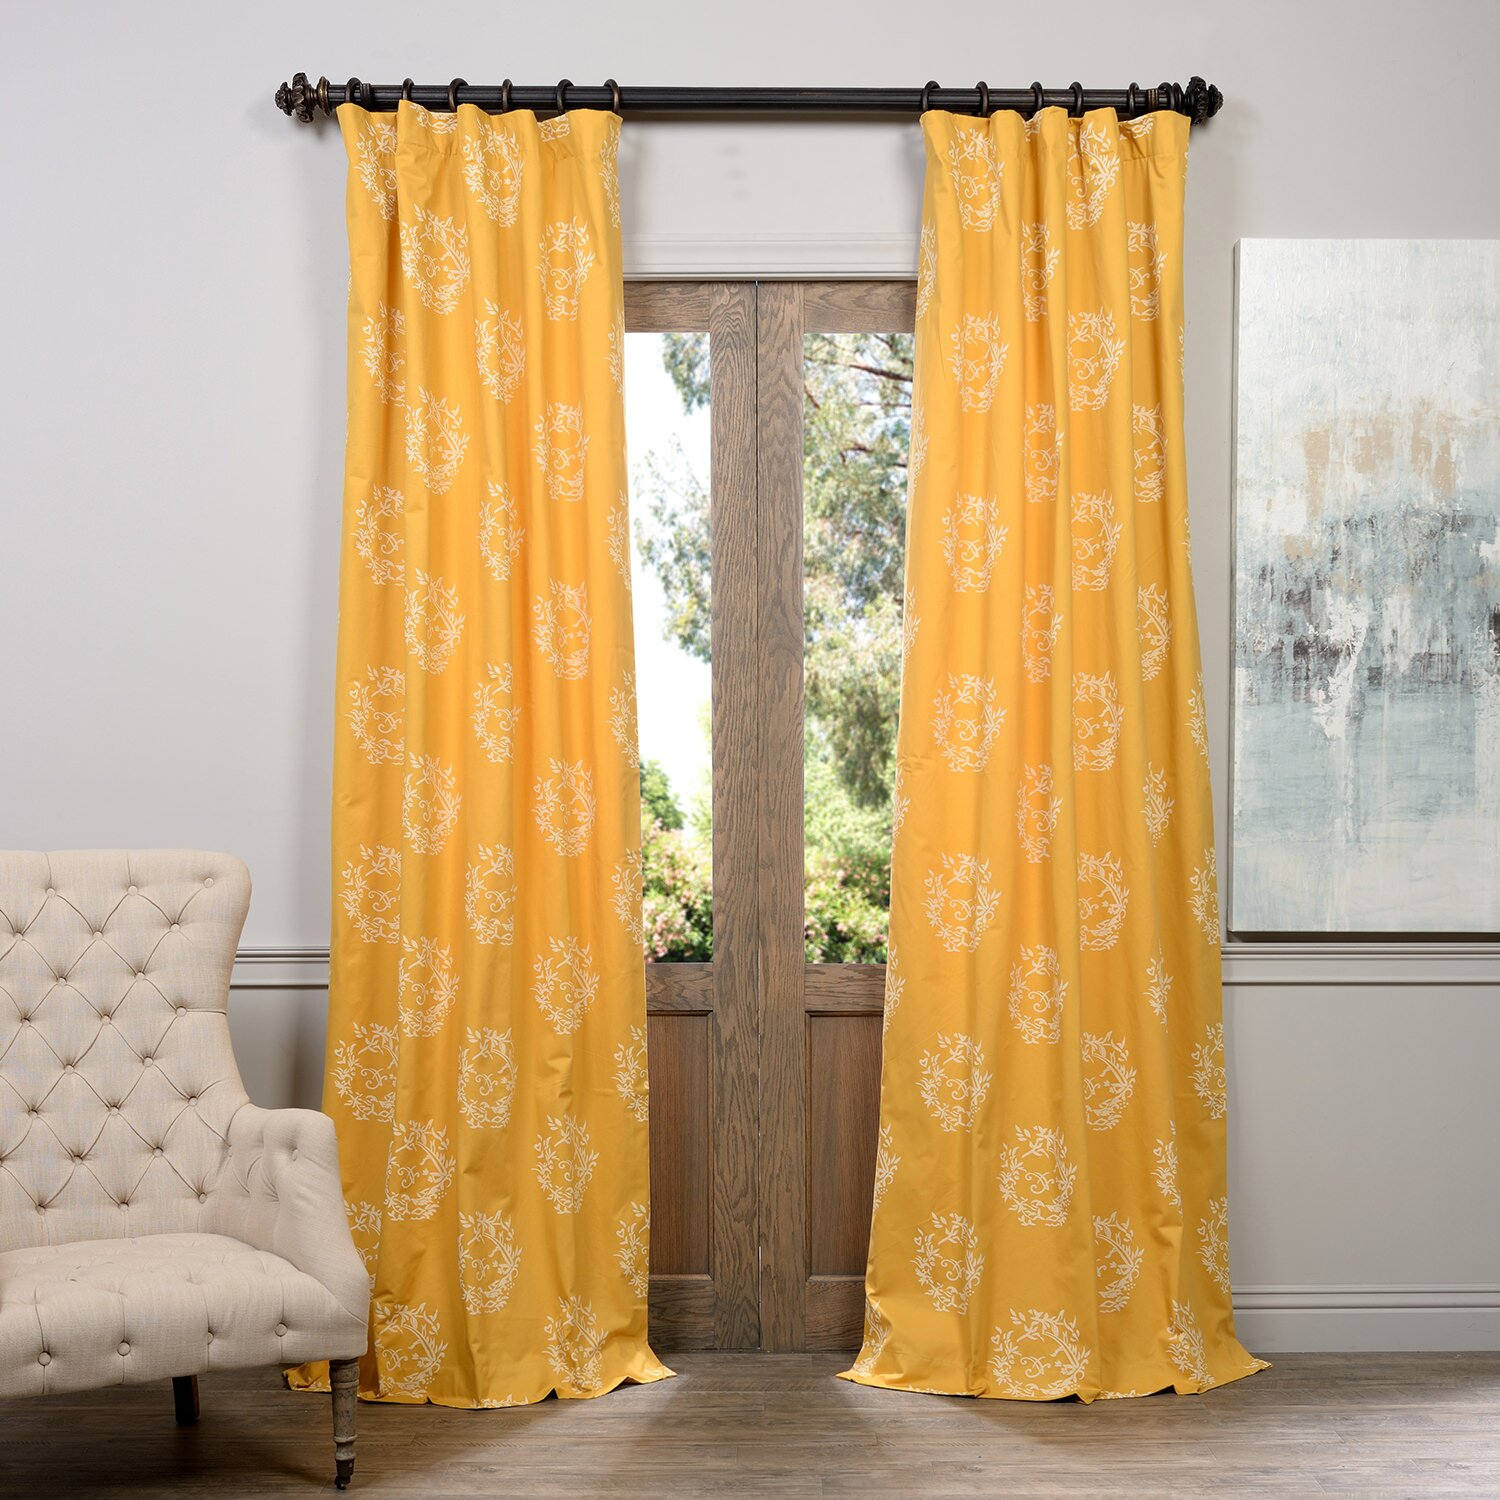 > Curtains & Window > Window Curtains & Drapes Window Curtains & Drapes. DEPARTMENT. Departments. All Window Curtains & Drapes. Curtain Panels () Price Range. Price Range. $0 - $25 () $26 - $50 () $51 - $ () $ - $ () $ - $ (11) $ - $ (2) $ - $ (1) Solid or Pattern. Solid or Pattern.